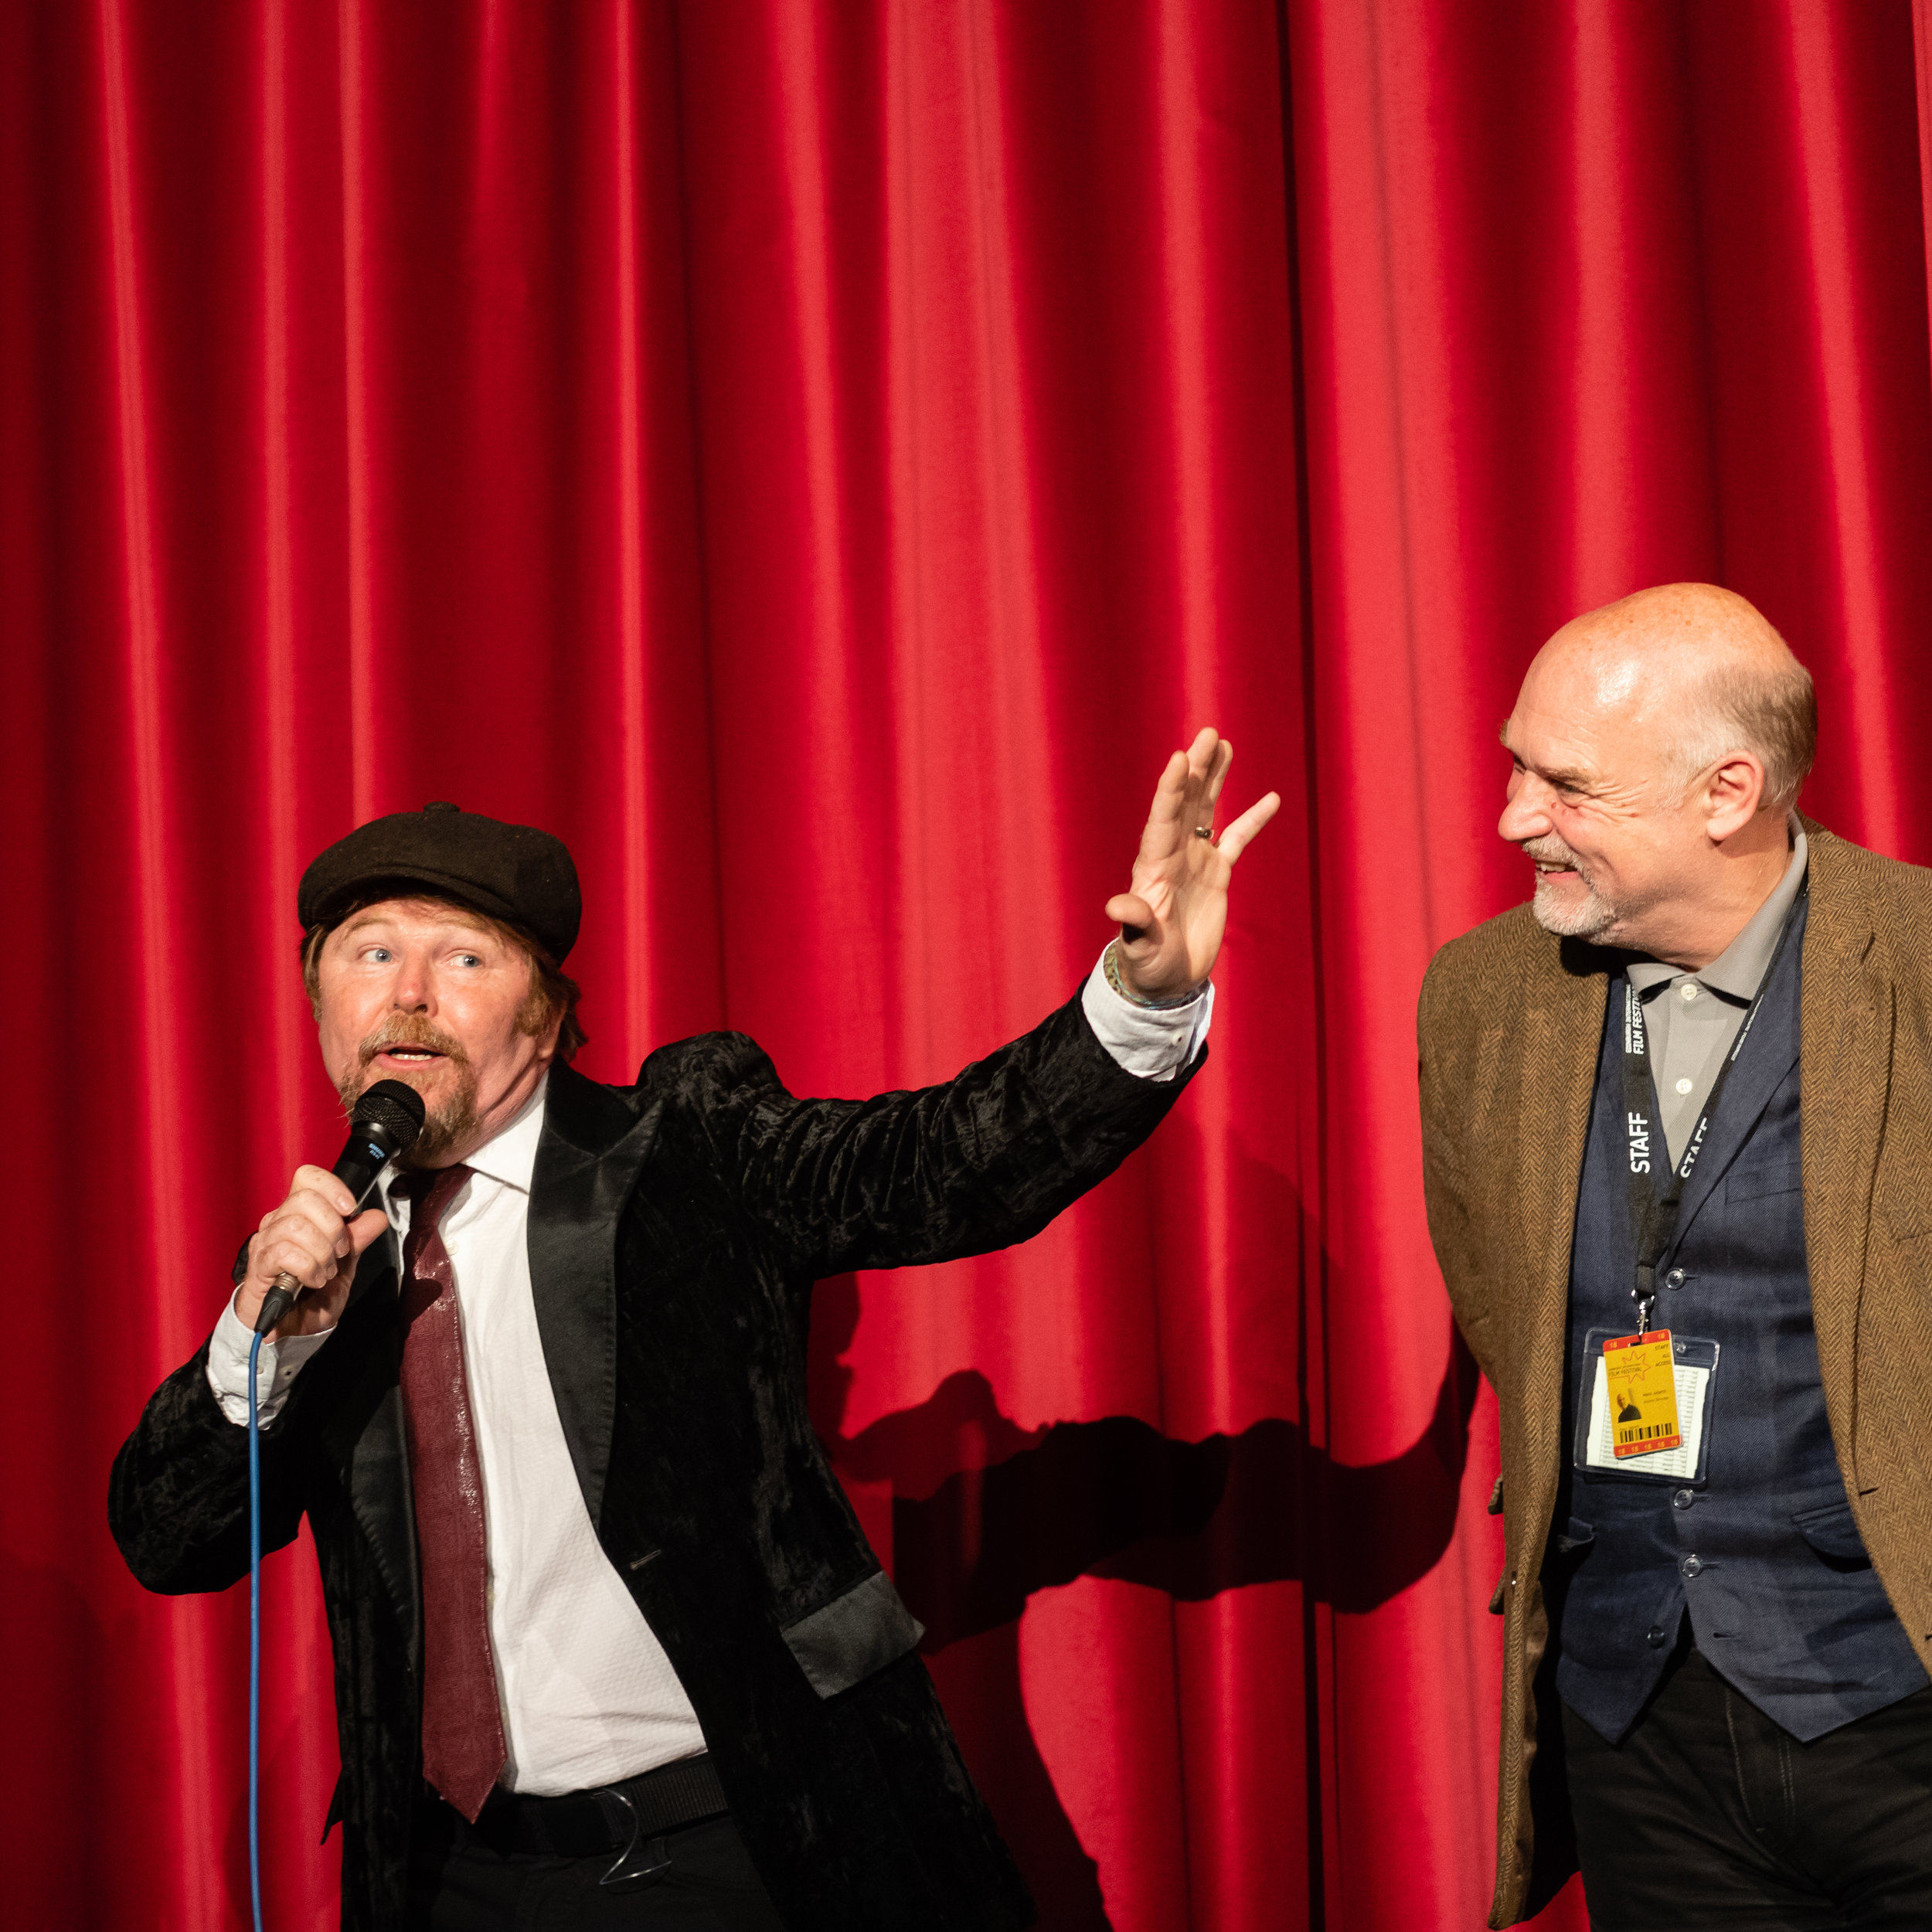 Owen Egerton introduces Blood Fest at the 2018 EIFF.